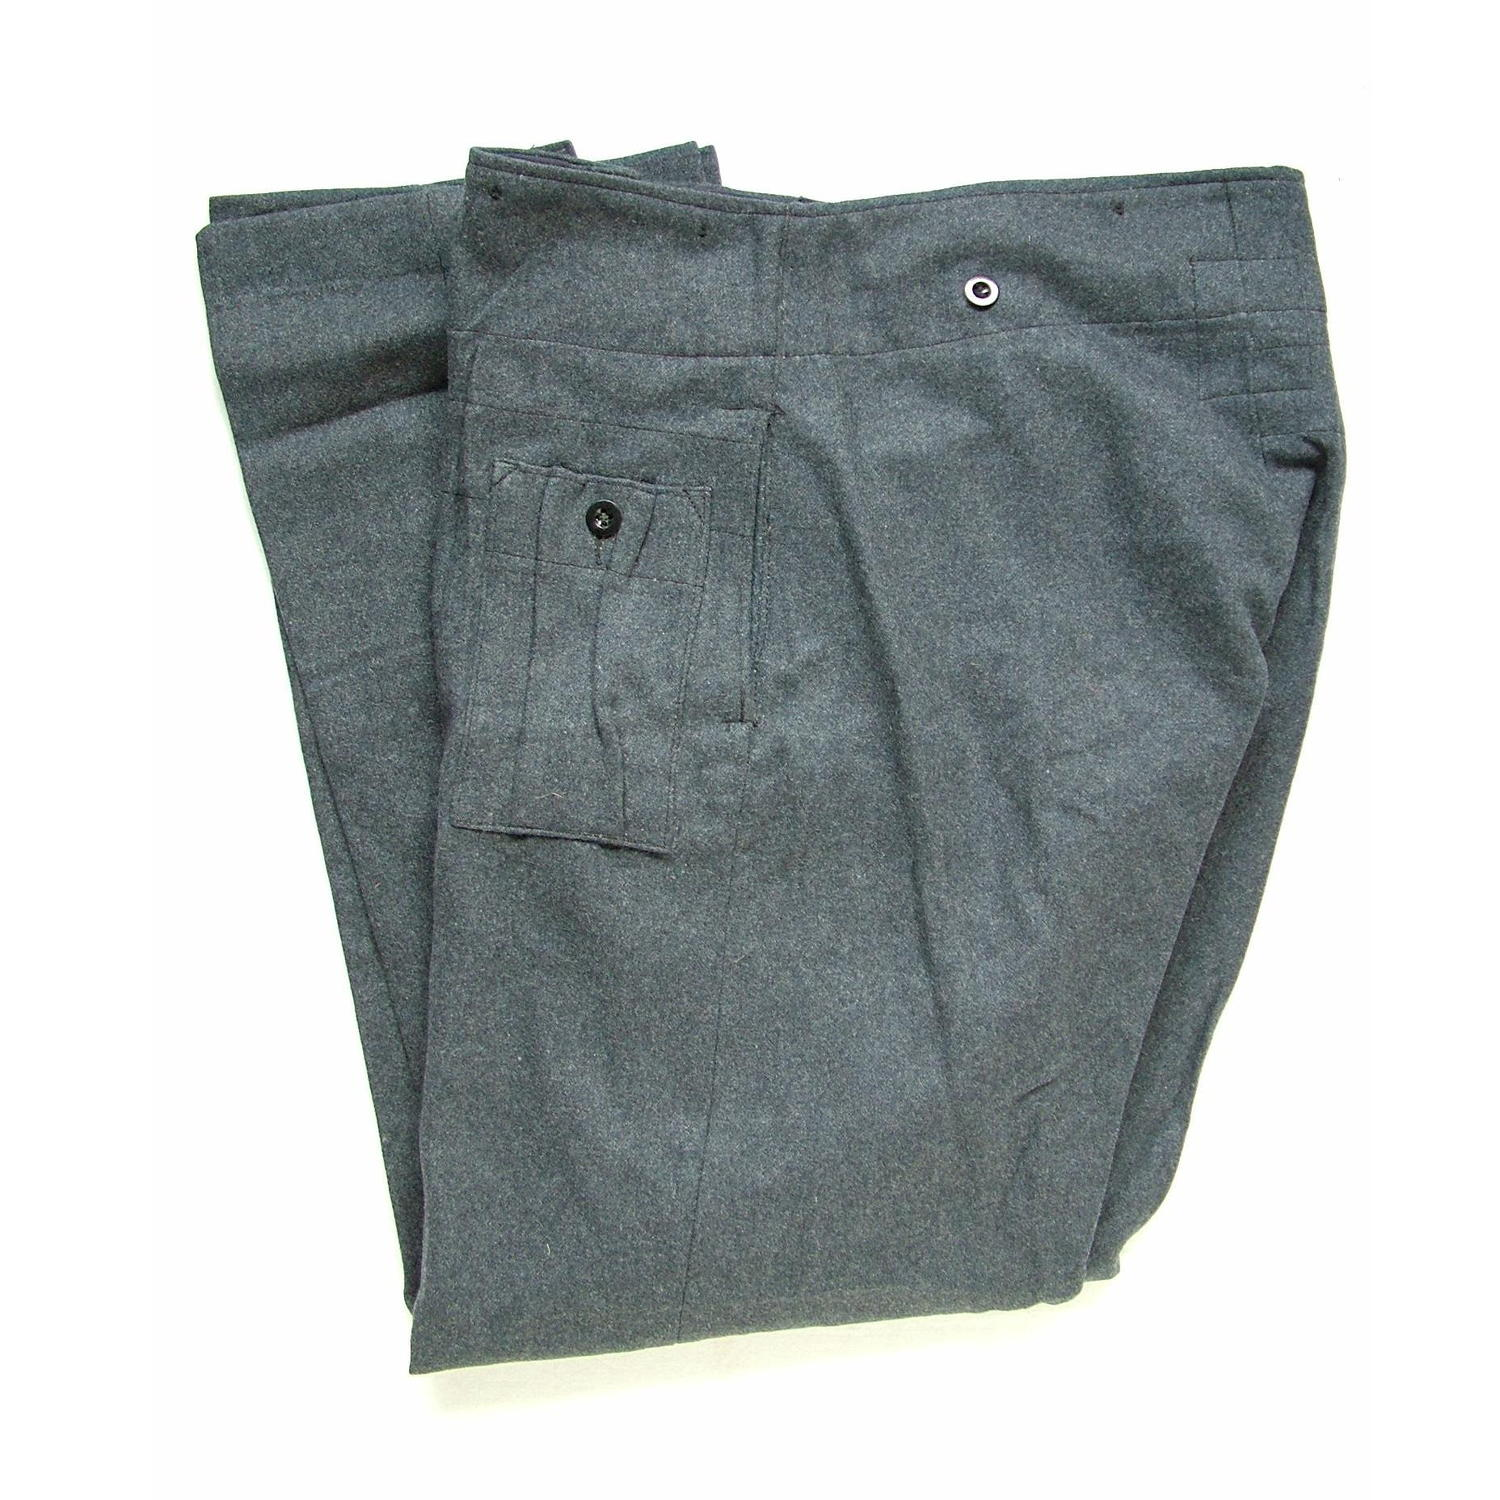 RAF war service dress trousers, biggest size made